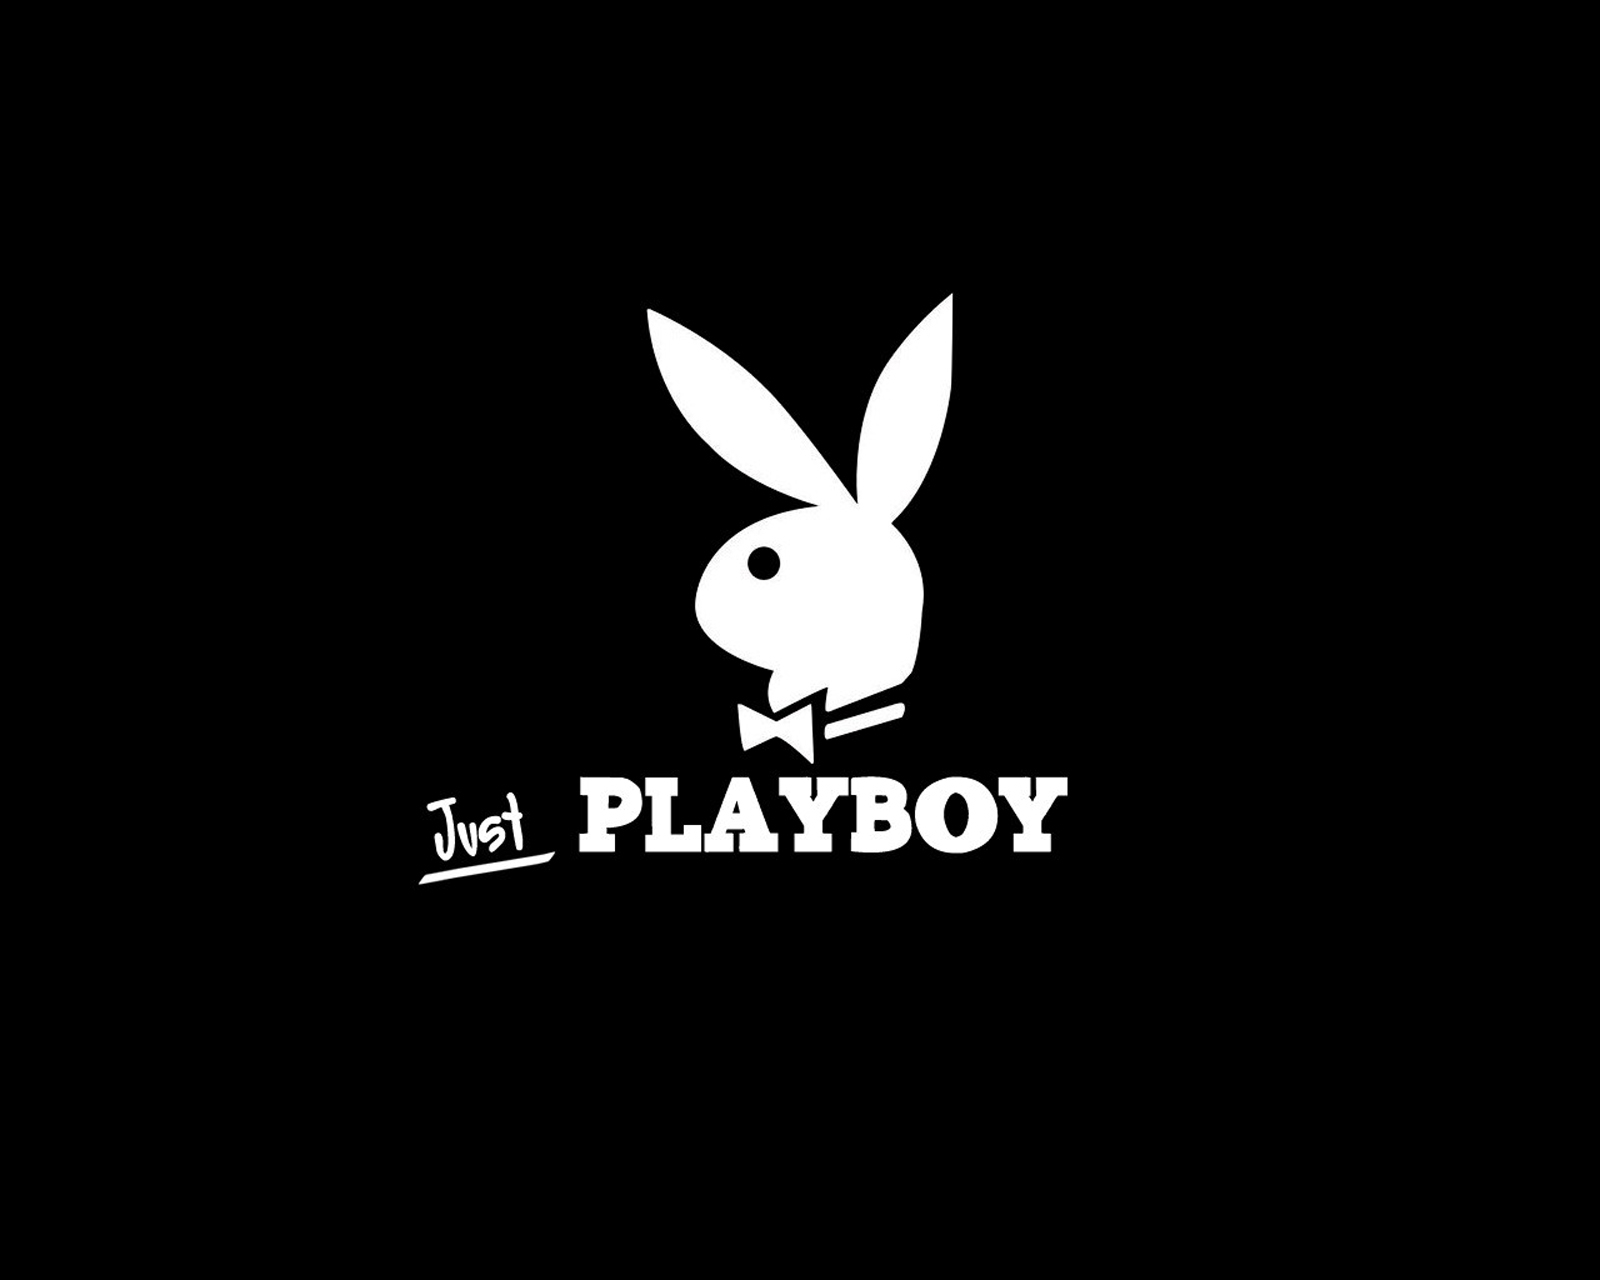 http://3.bp.blogspot.com/-M-ndwd1OL9I/ToJXi7GKluI/AAAAAAAABYE/0jofw4db5Ds/s1600/Playboy_Logo_Bunny_Just_Black_And_White_Poster_Vvallpaper.net.jpg